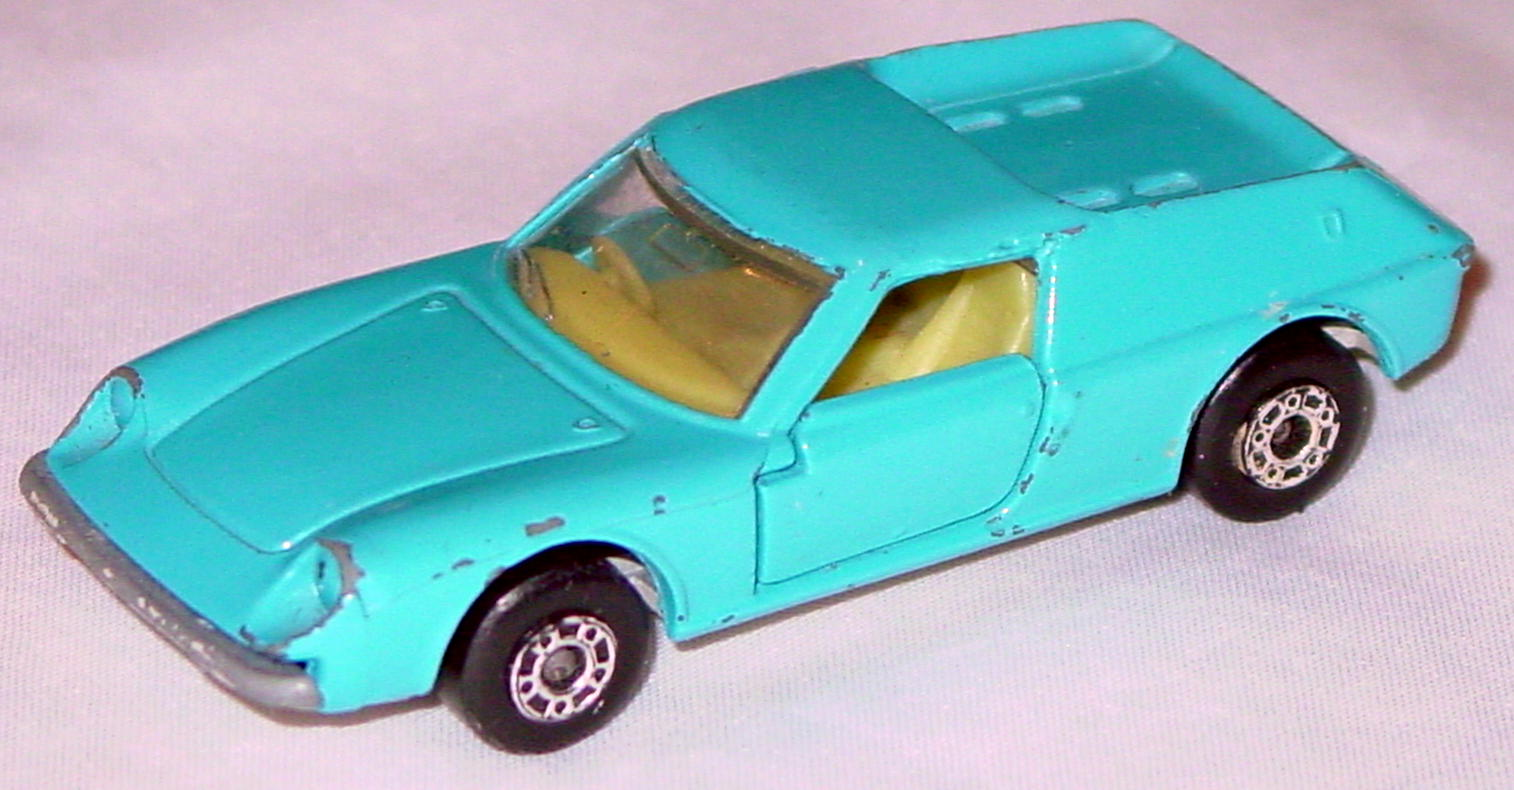 Bulgarian 05 A 1 - Lotus Europa light Blue sil-grey base light yellow interior clear